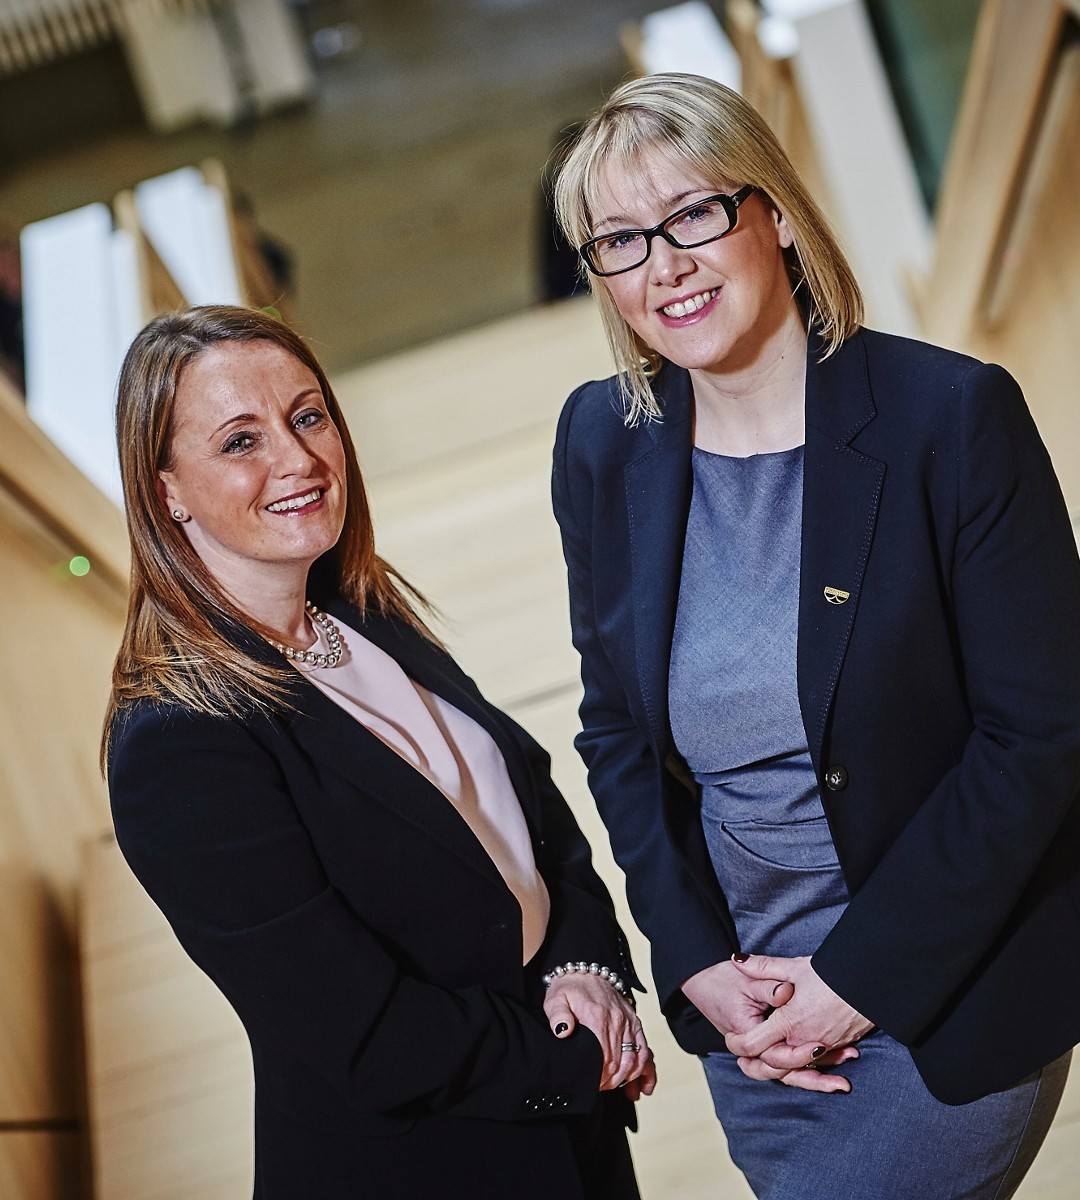 LAW FIRM'S THRIVING EMPLOYMENT TEAM TAKES ON HR SPECIALIST